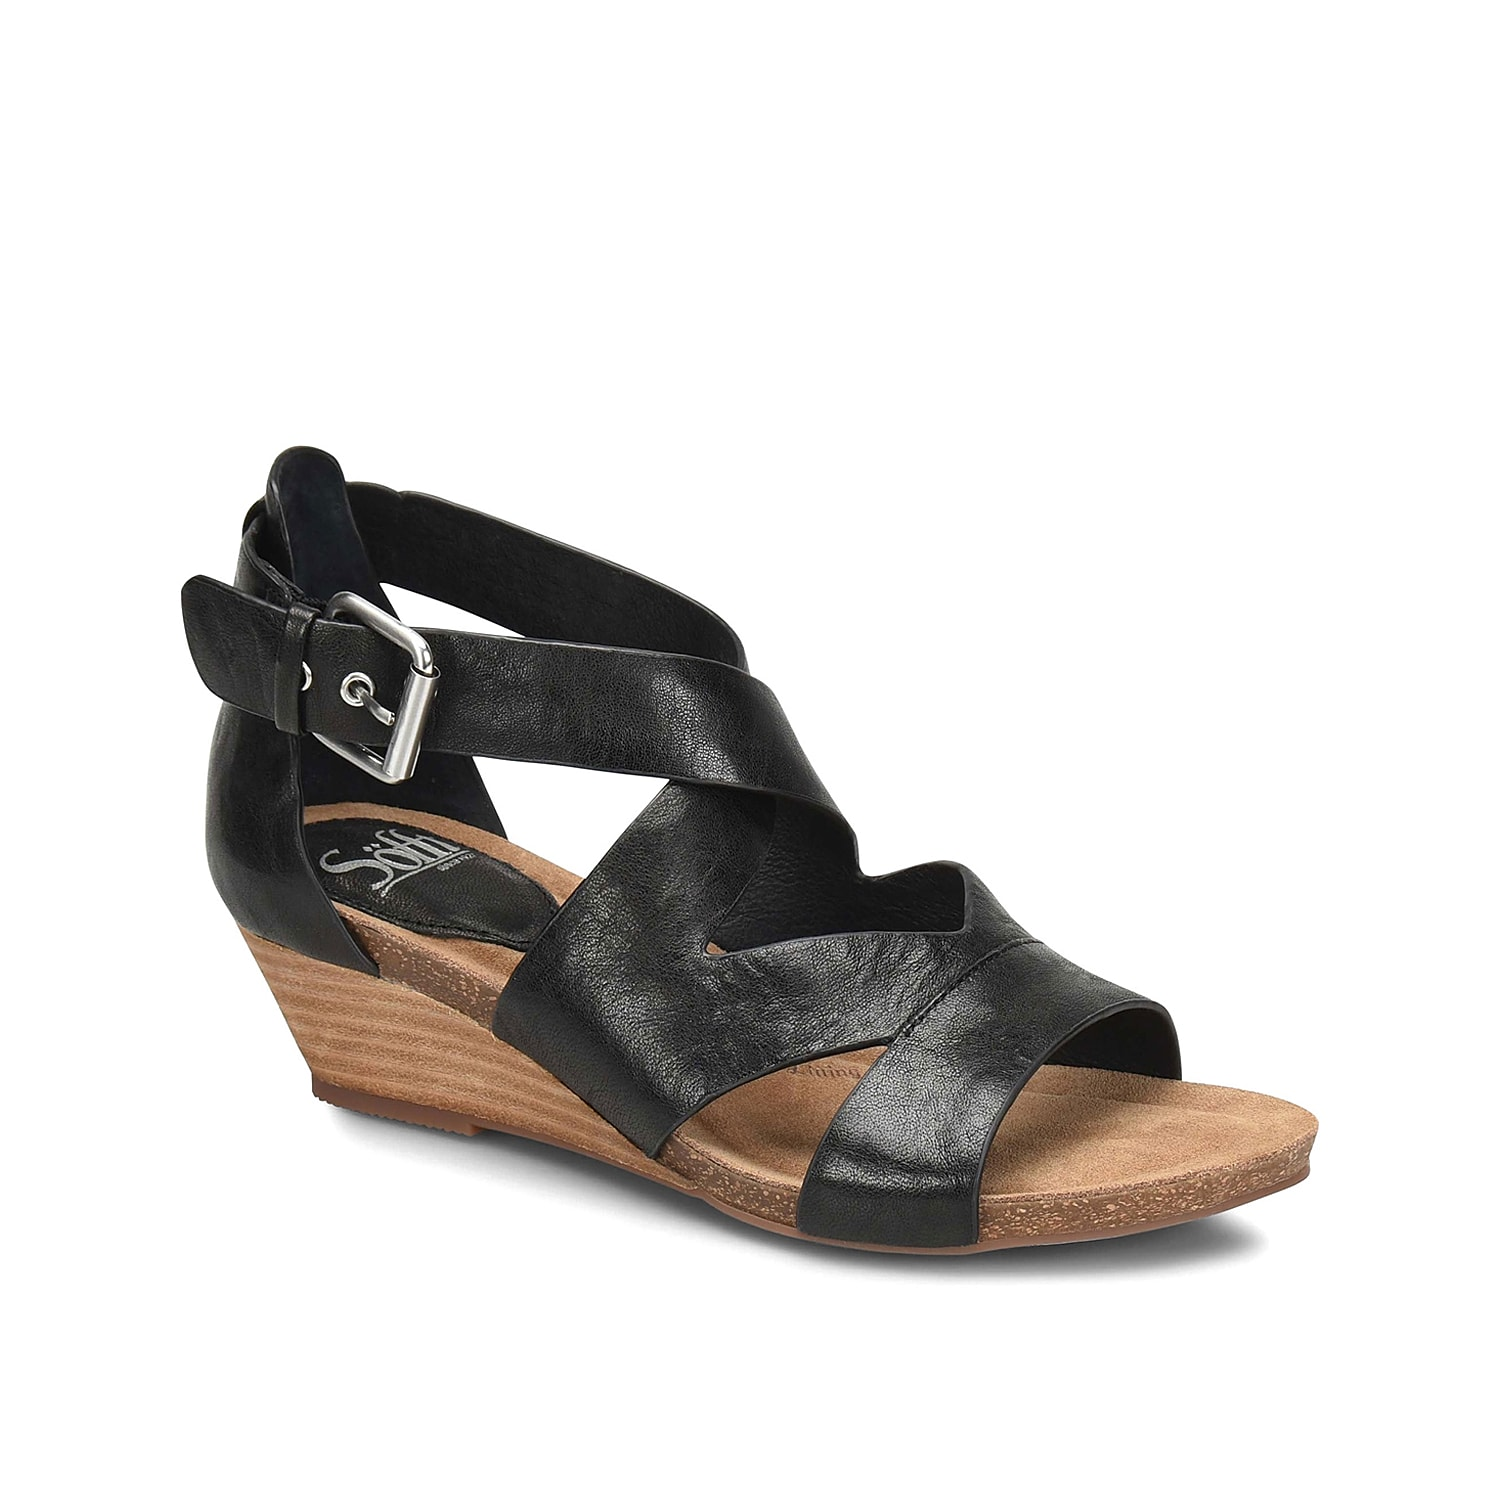 Show off your femme style with the Vara wedge sandal from Sofft. This one-of-a-kind pair is fashioned with a leather upper and a stacked heel for some height!